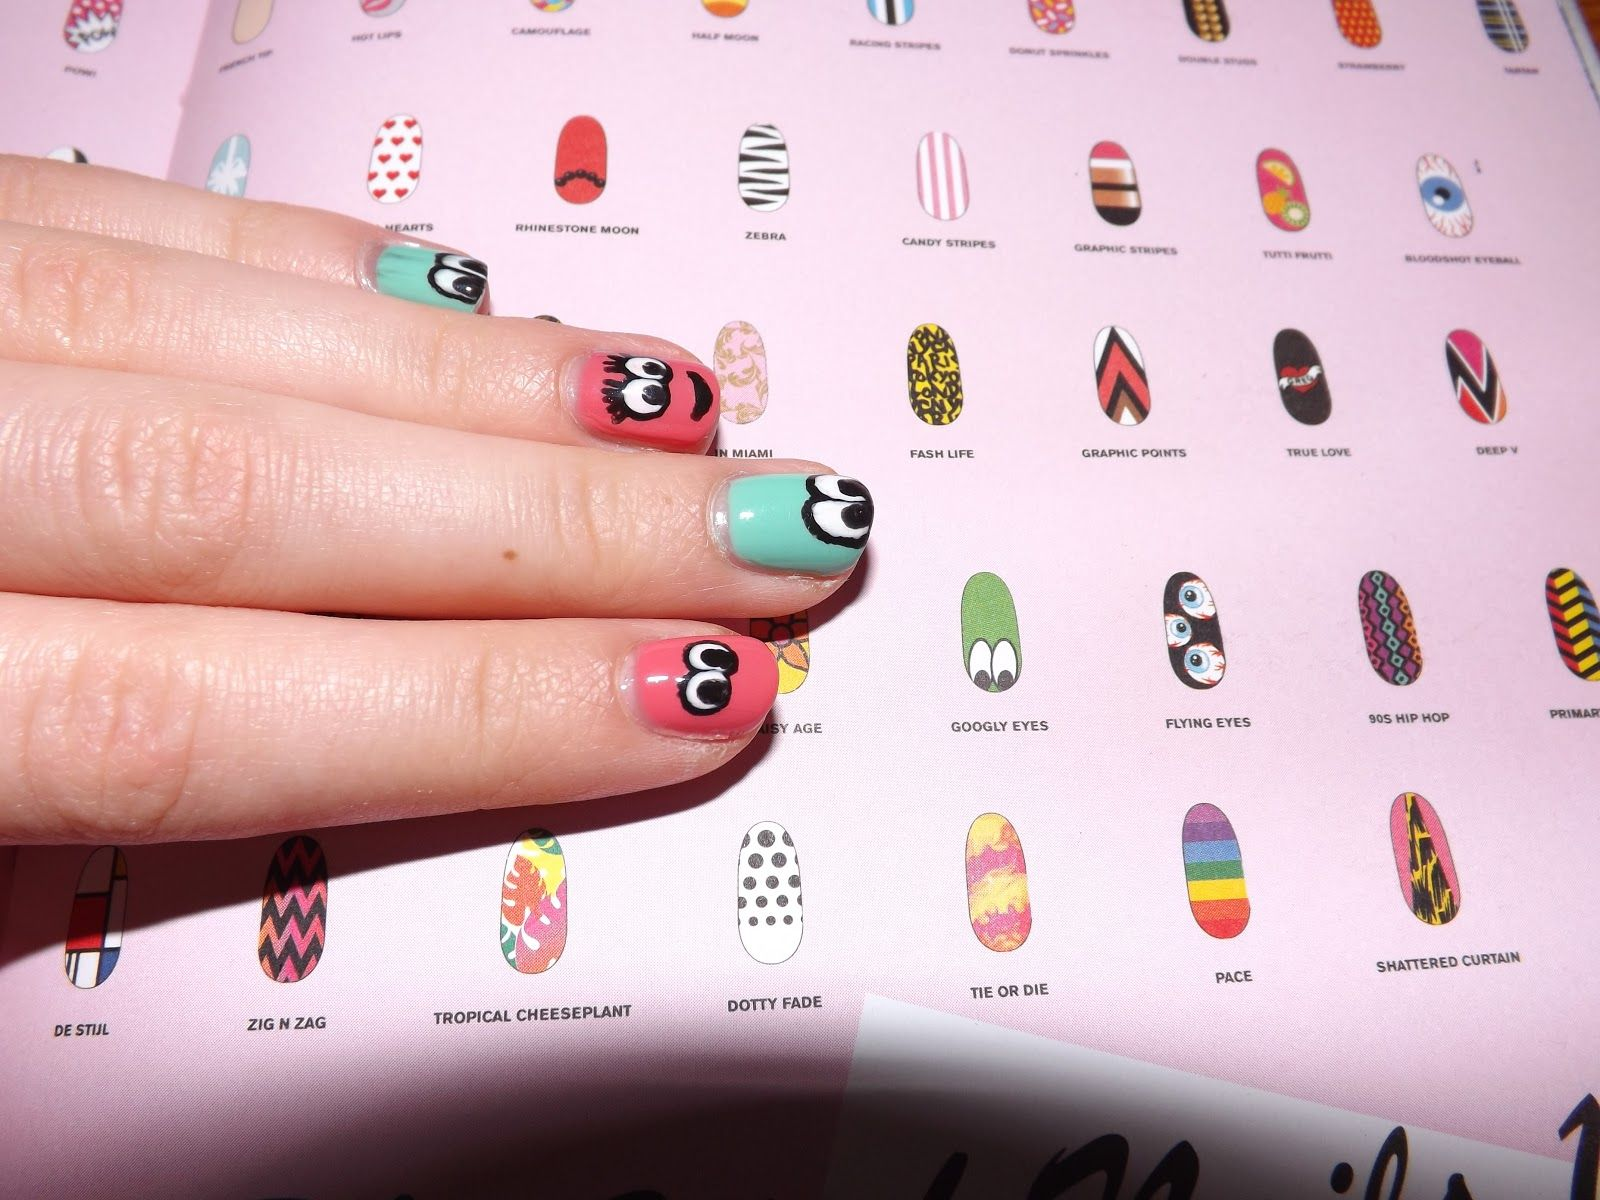 Famous Nail Designs Step By Step Guide Images - Nail Art Ideas ...